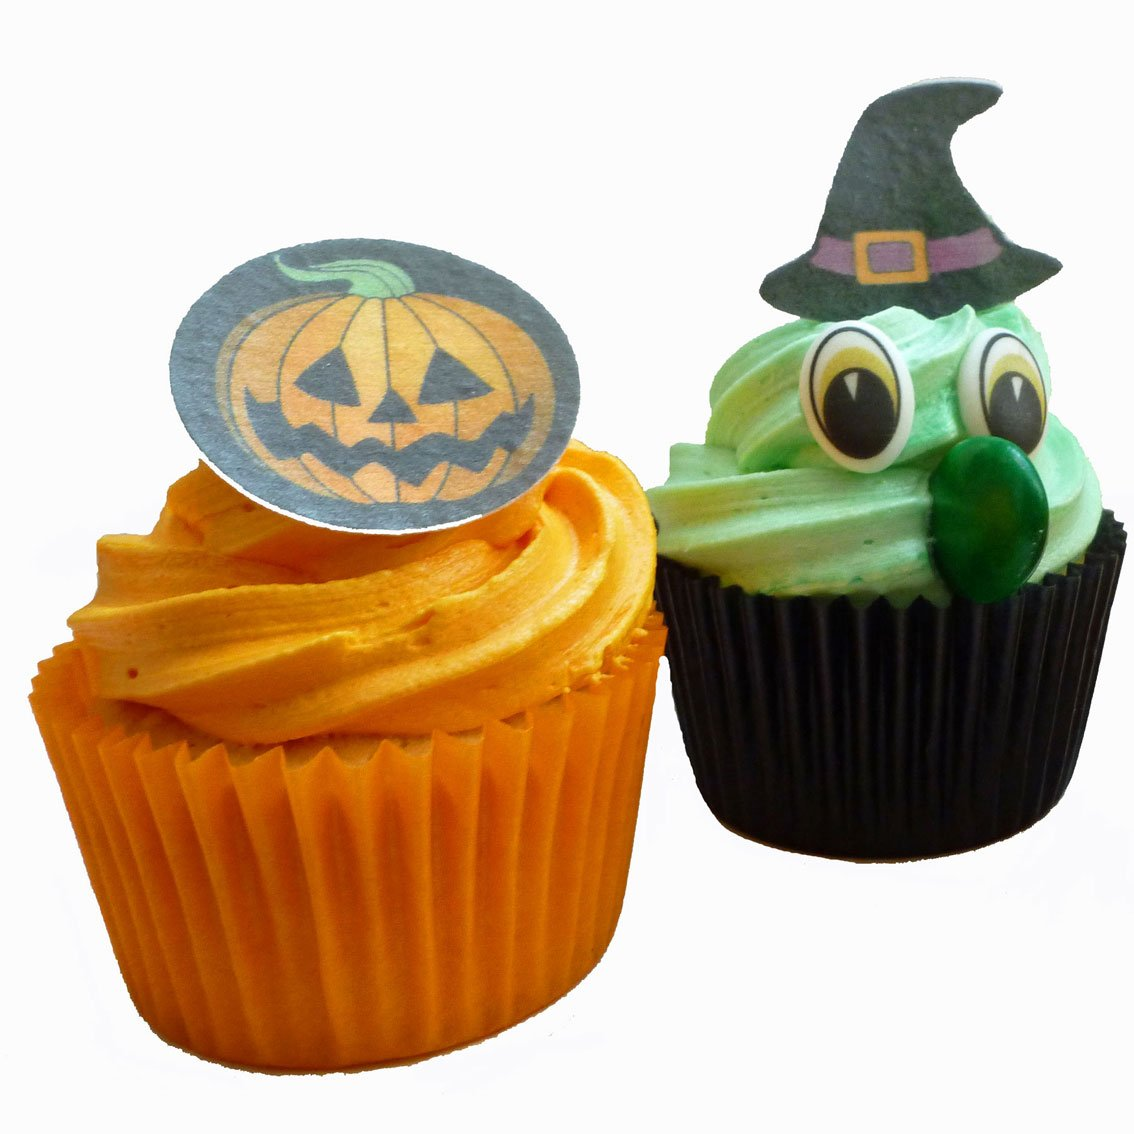 6 x HALLOWEEN EDIBLE WITCHES HATS CUPCAKE TOPPERS